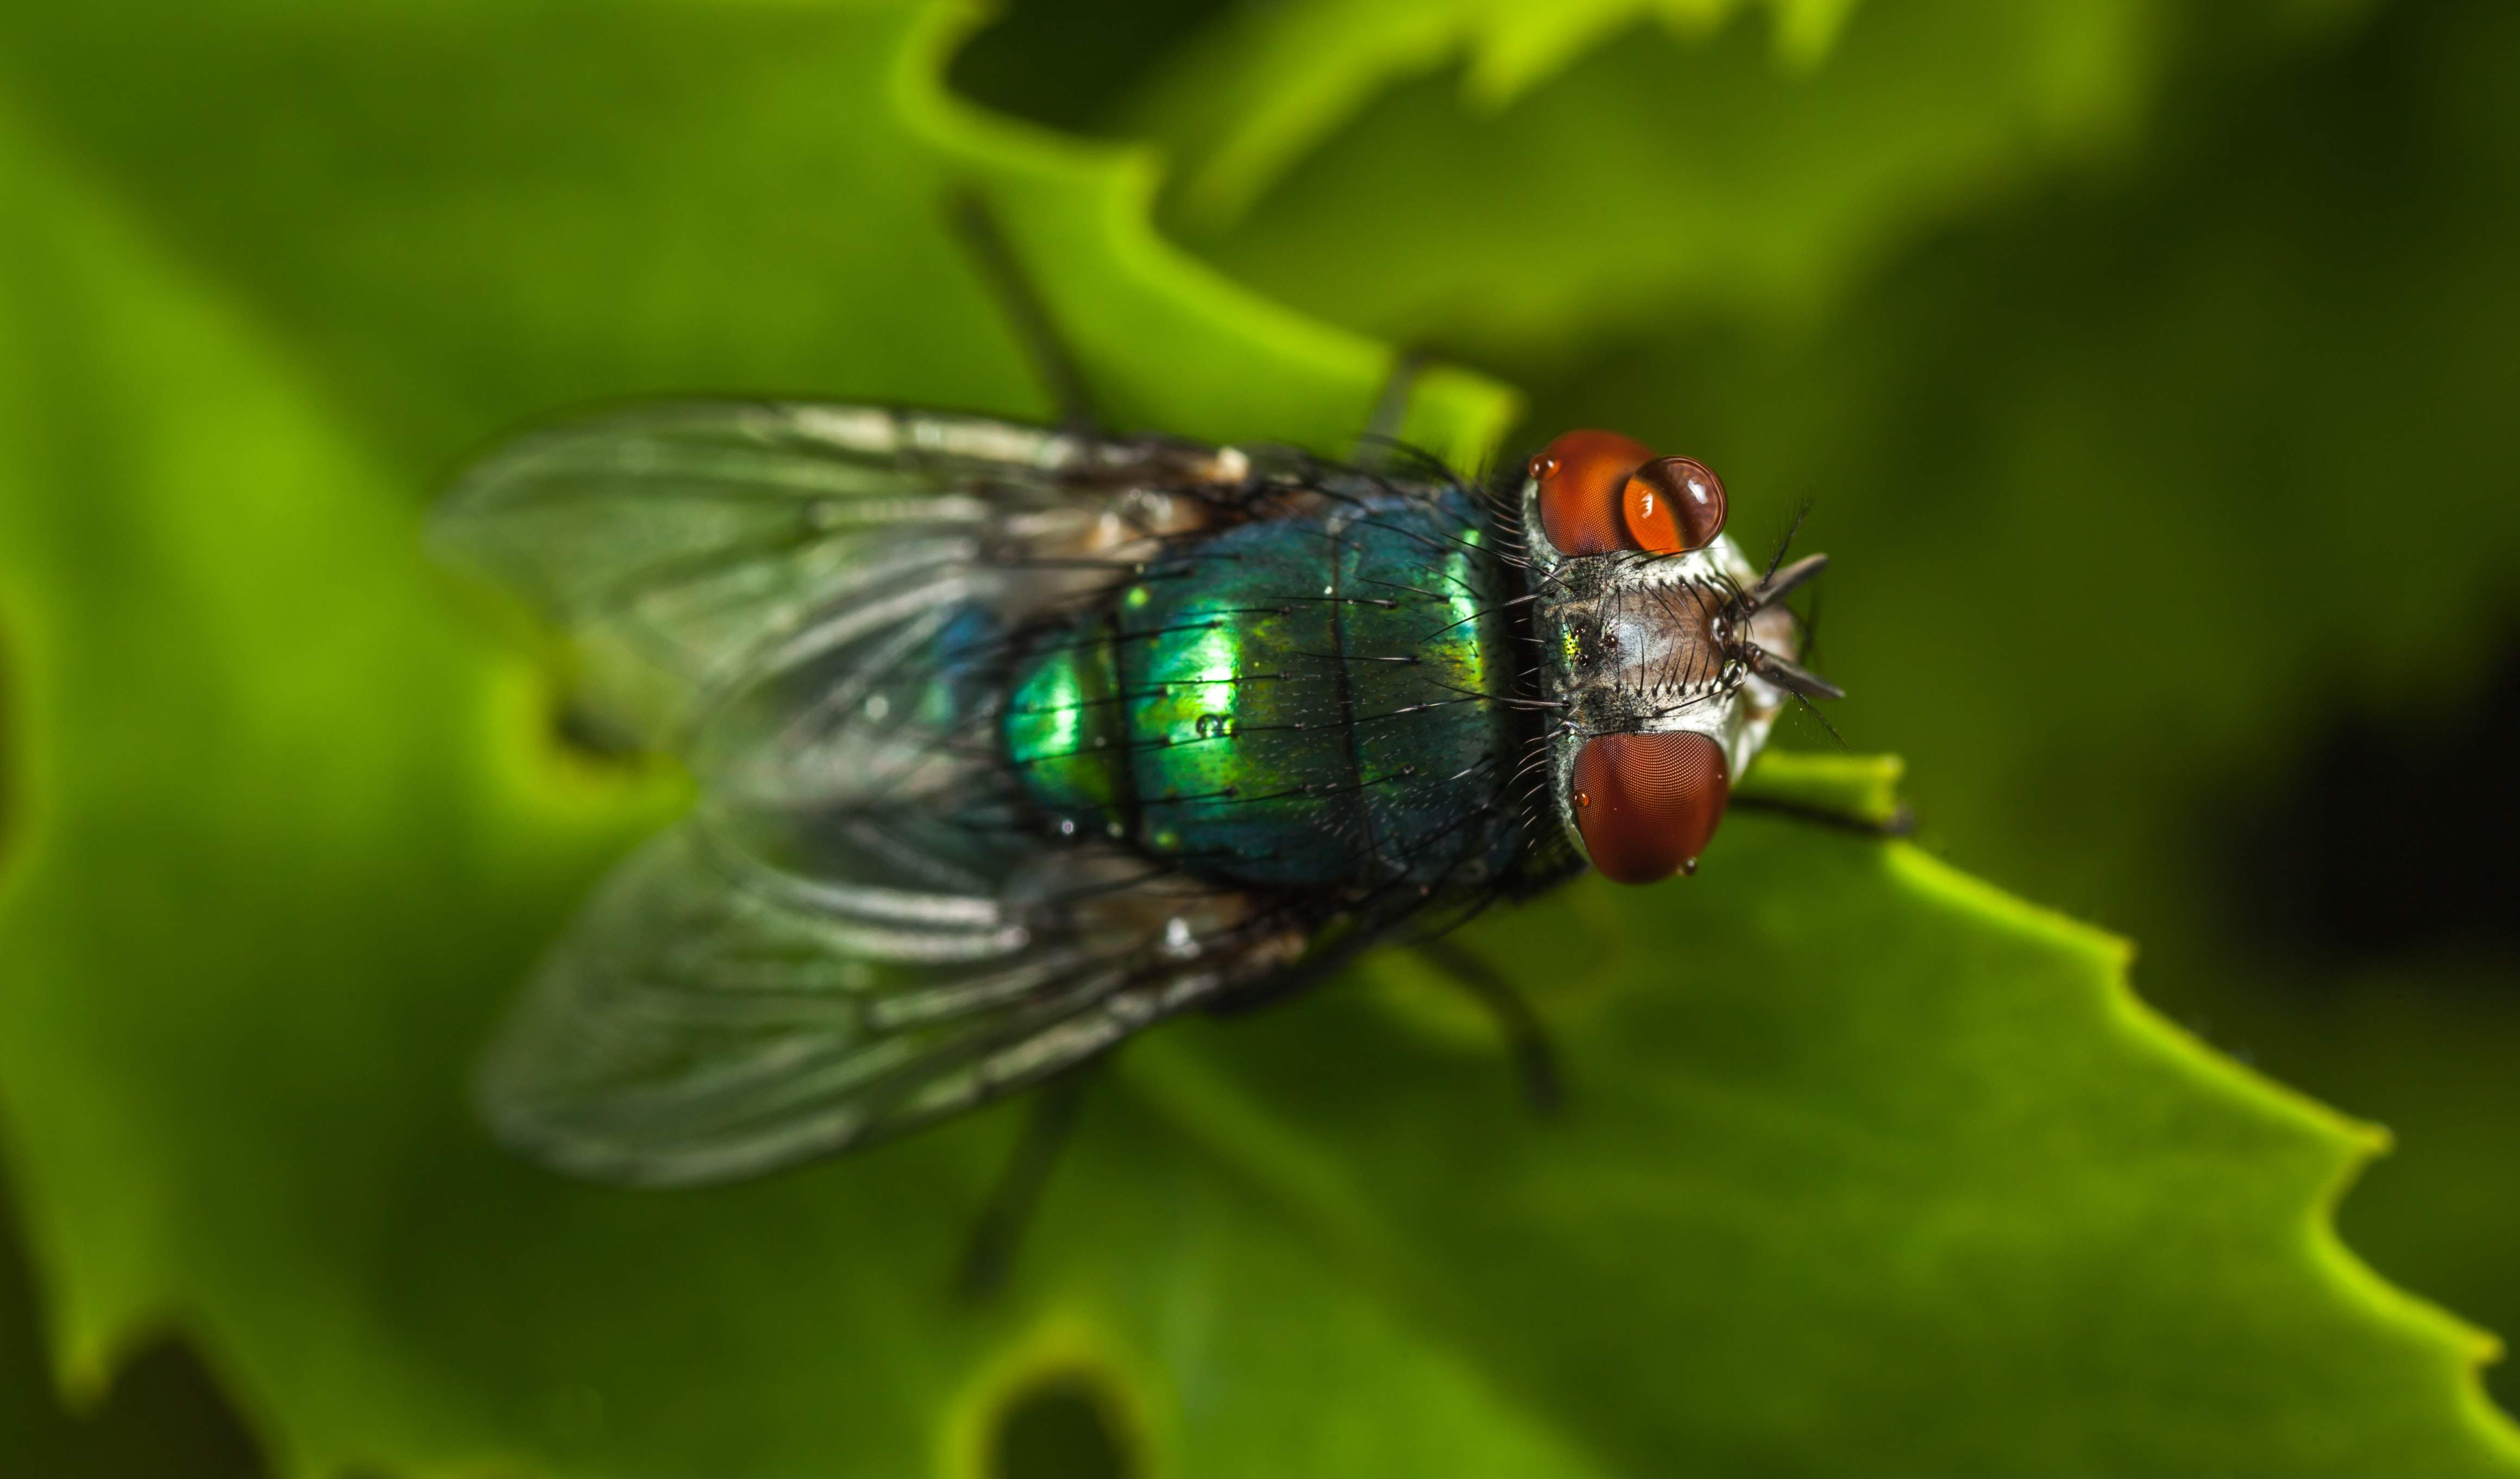 Macro Photography of Green Fly · Free Stock Photo